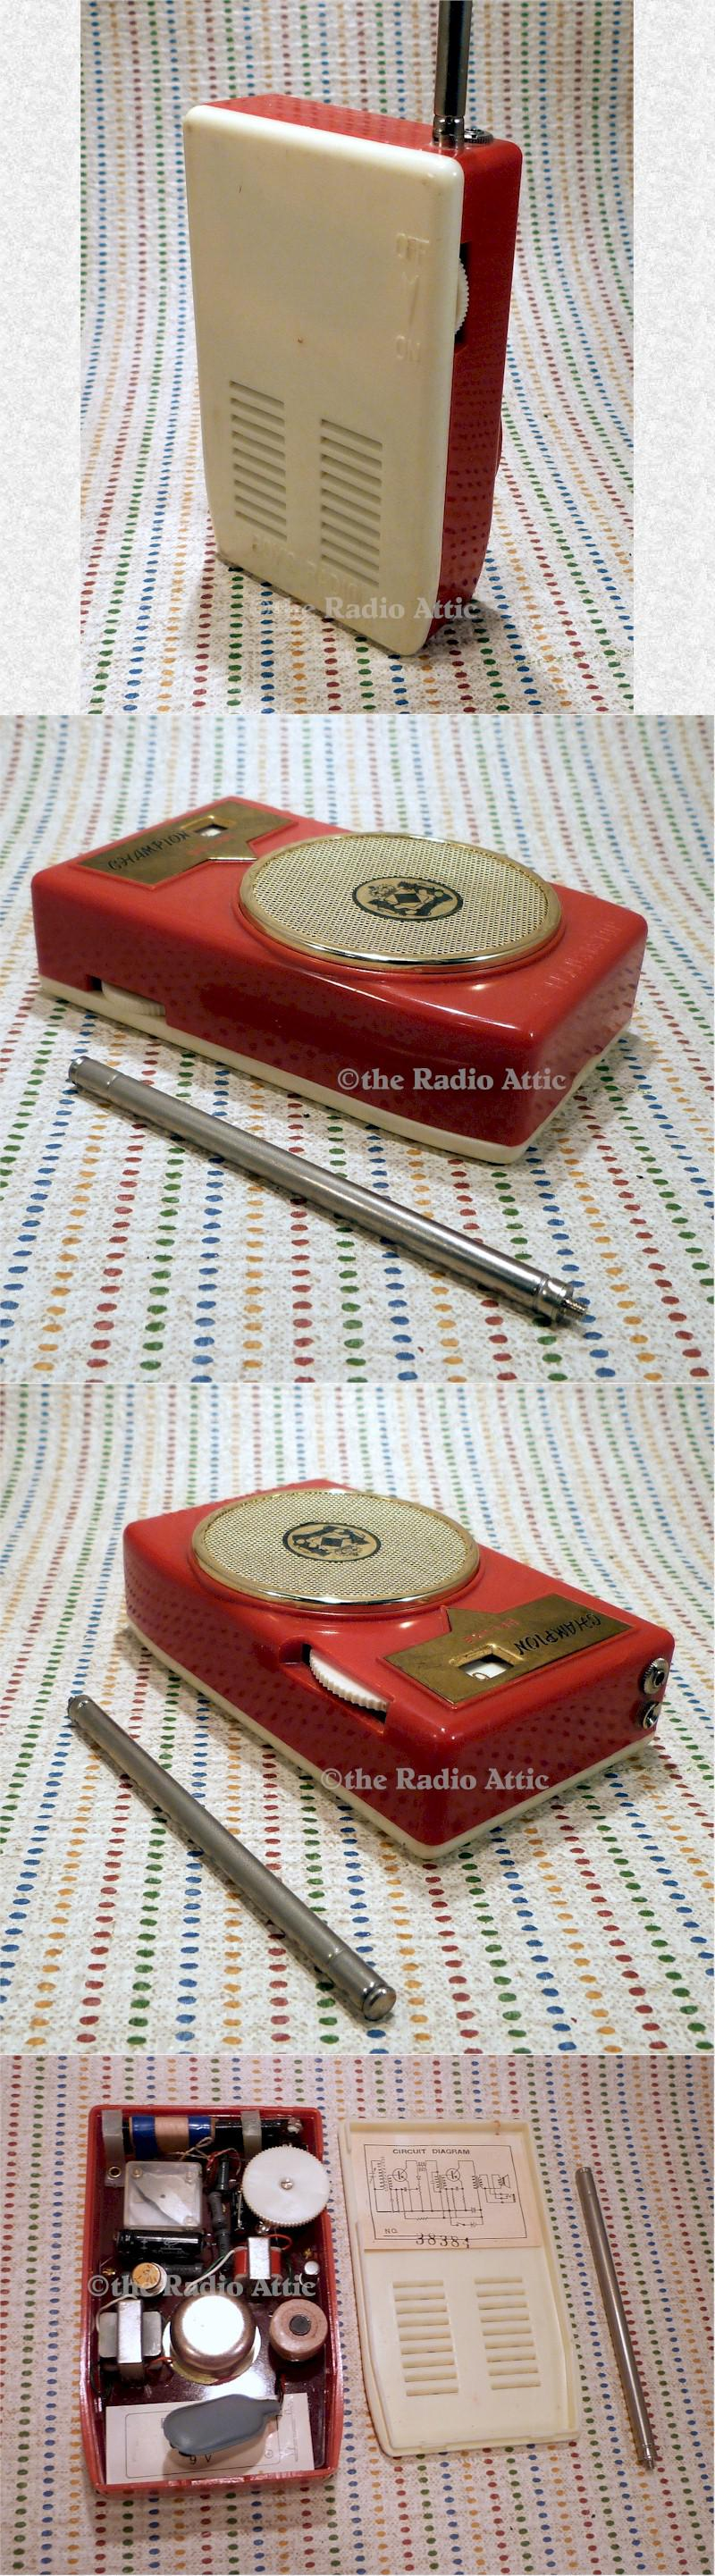 Champion Deluxe Boy's Radio